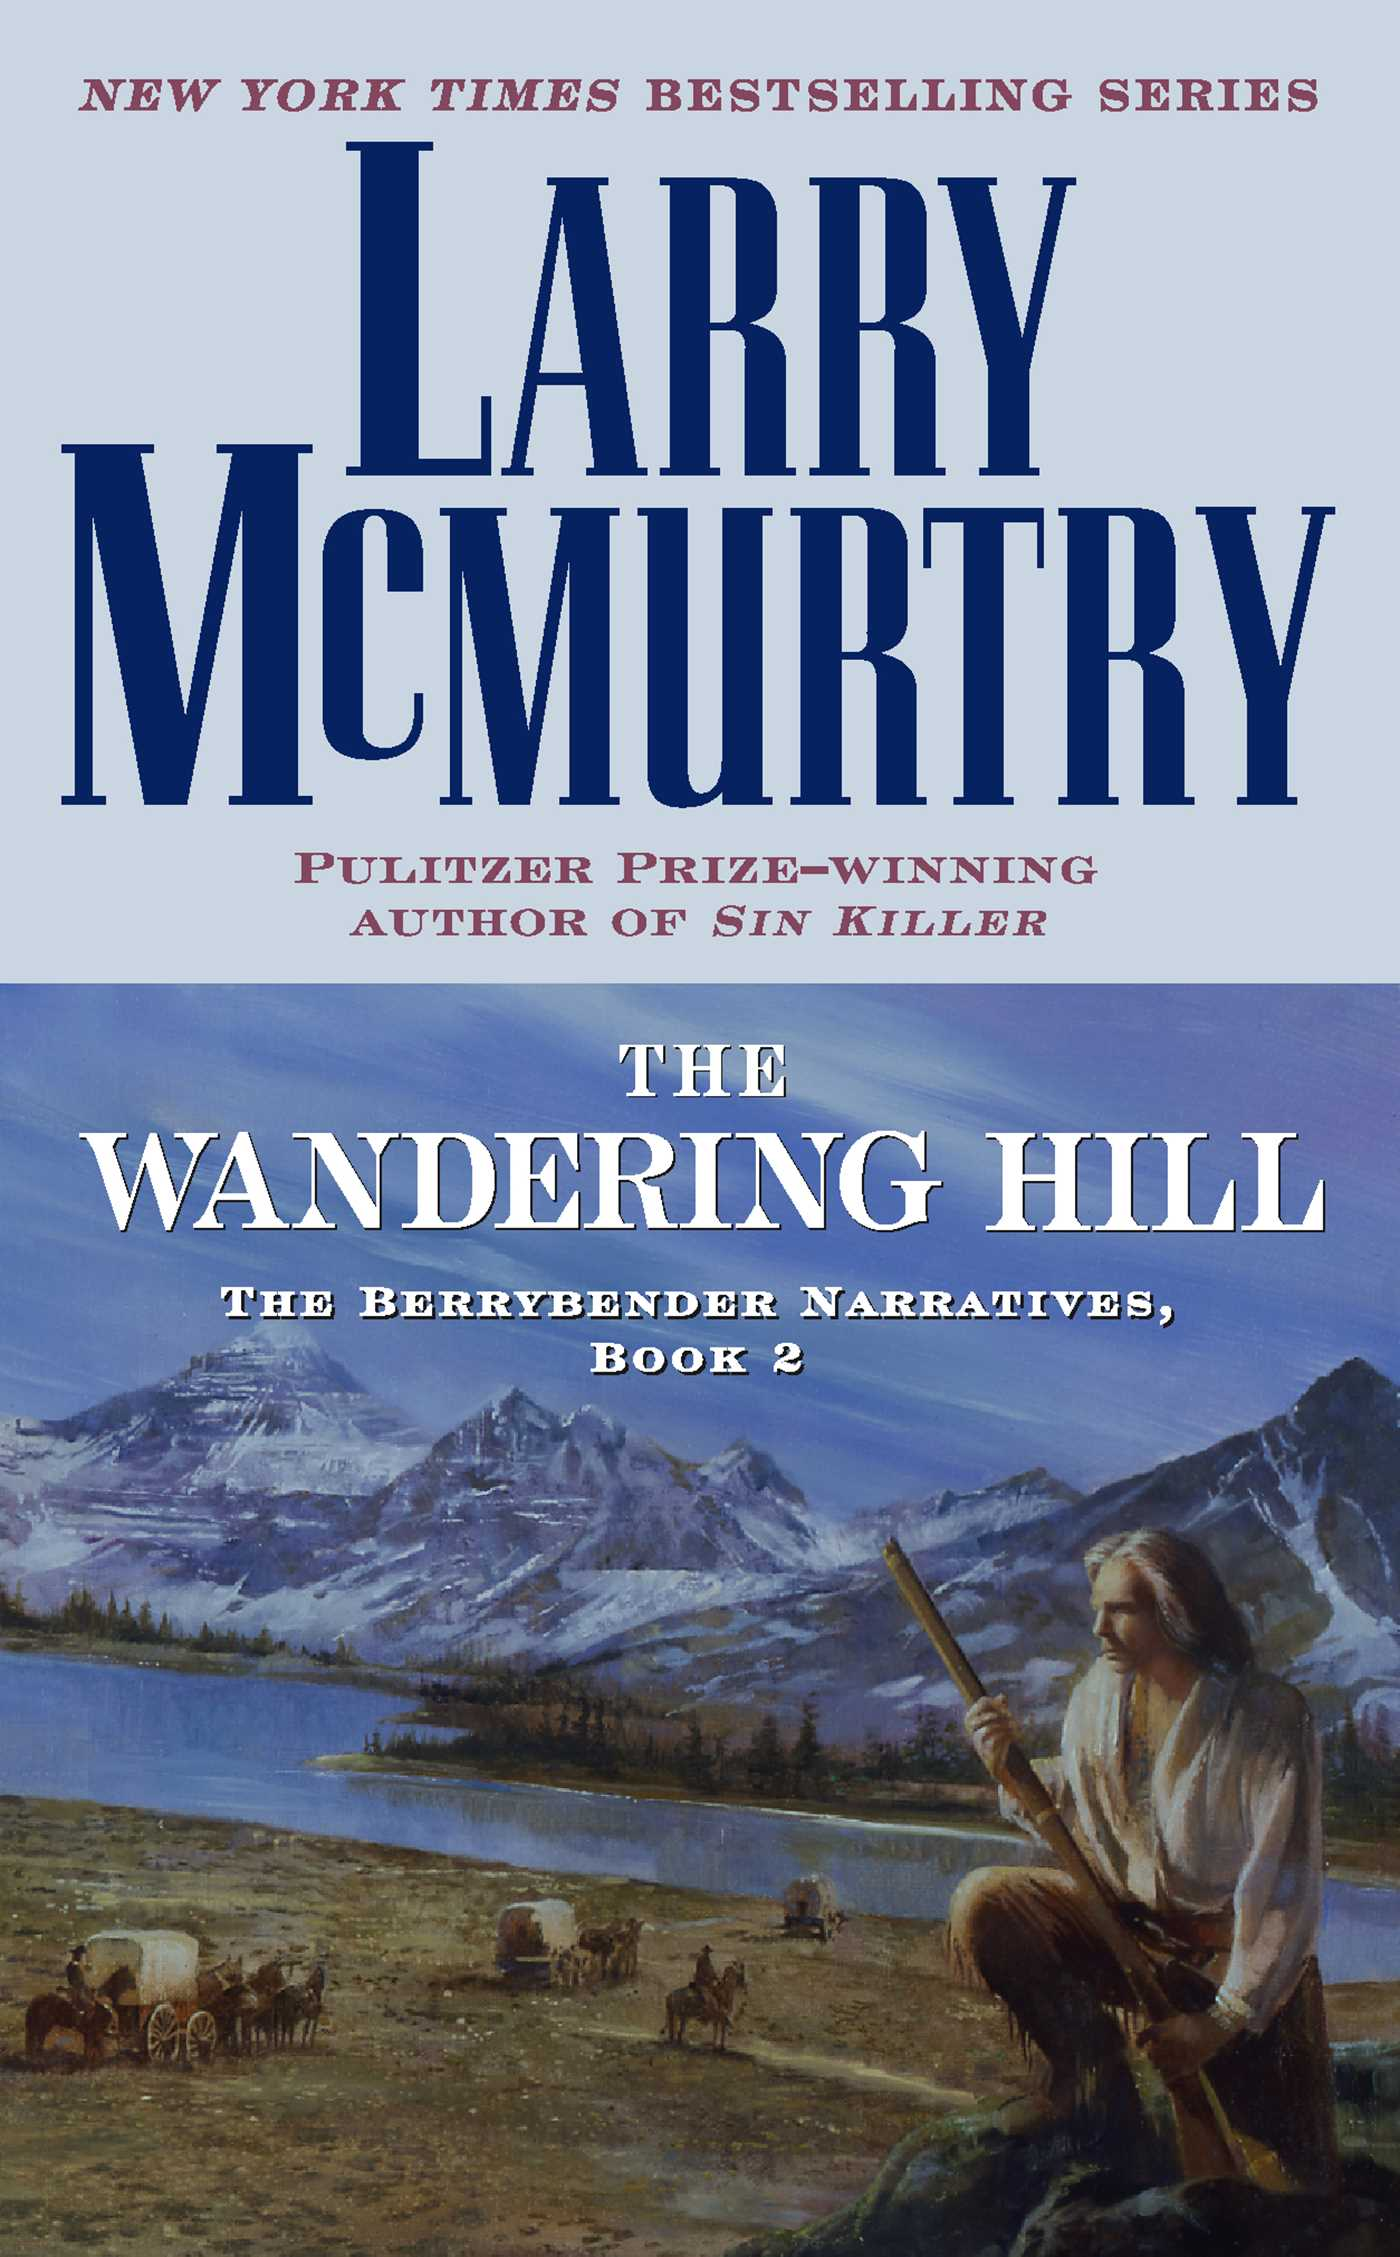 The wandering hill 9781439141472 hr